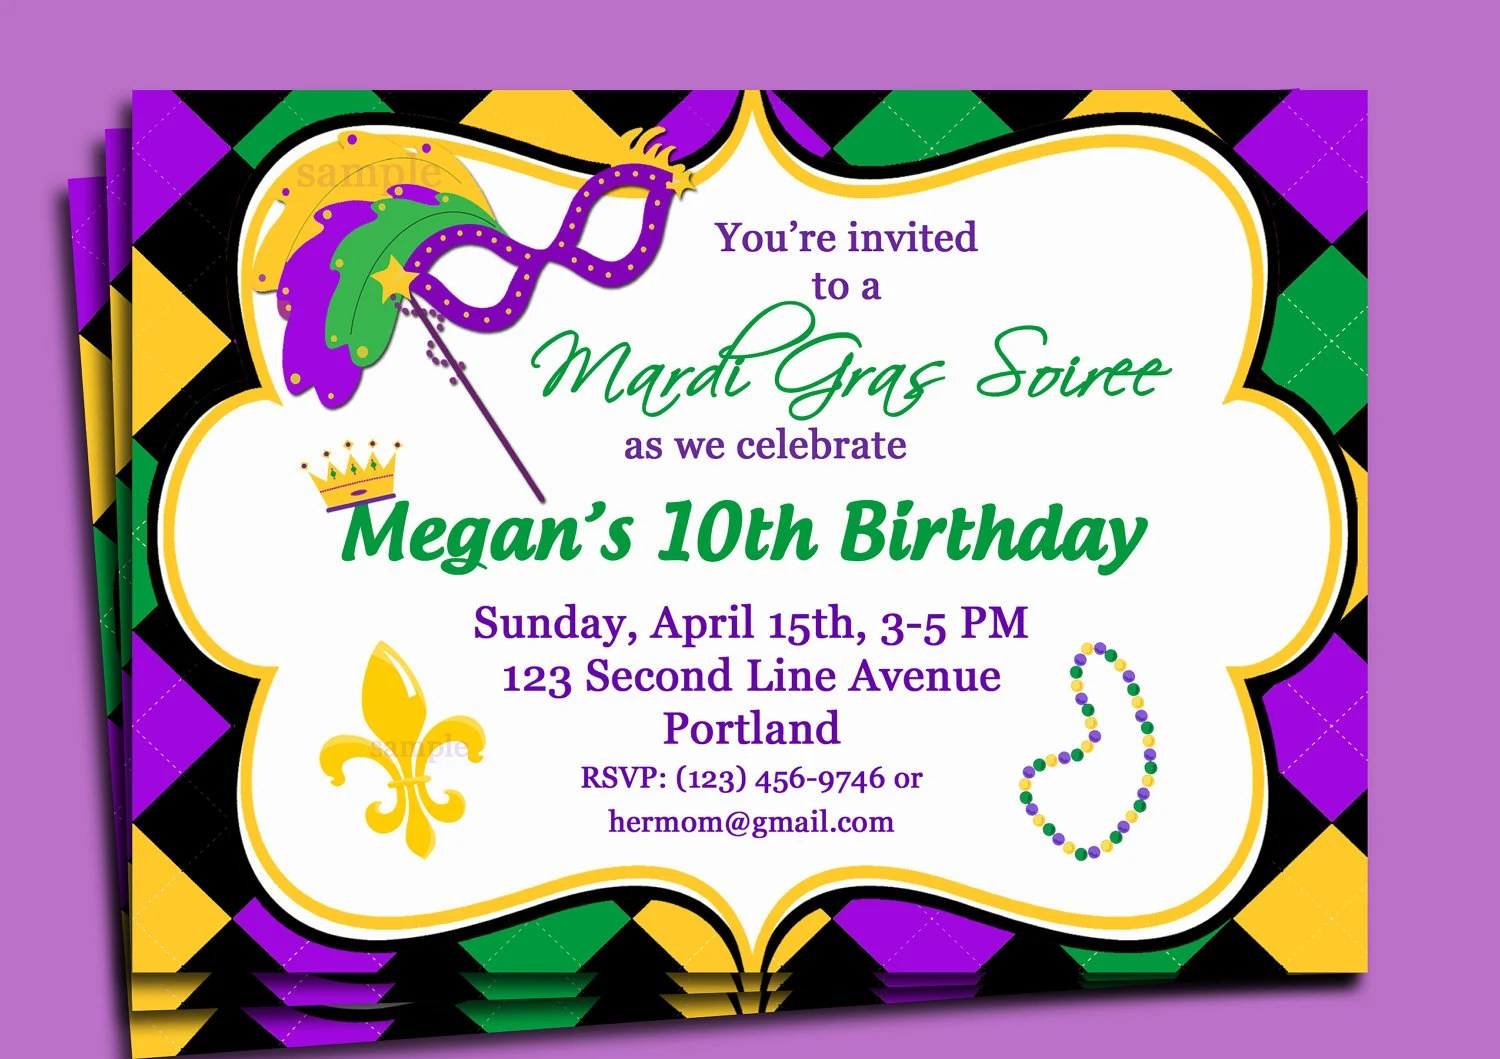 photo about Free Printable Mardi Gras Invitations known as Cost-free Printable Mardi Gras Invites - Anarchistshemale